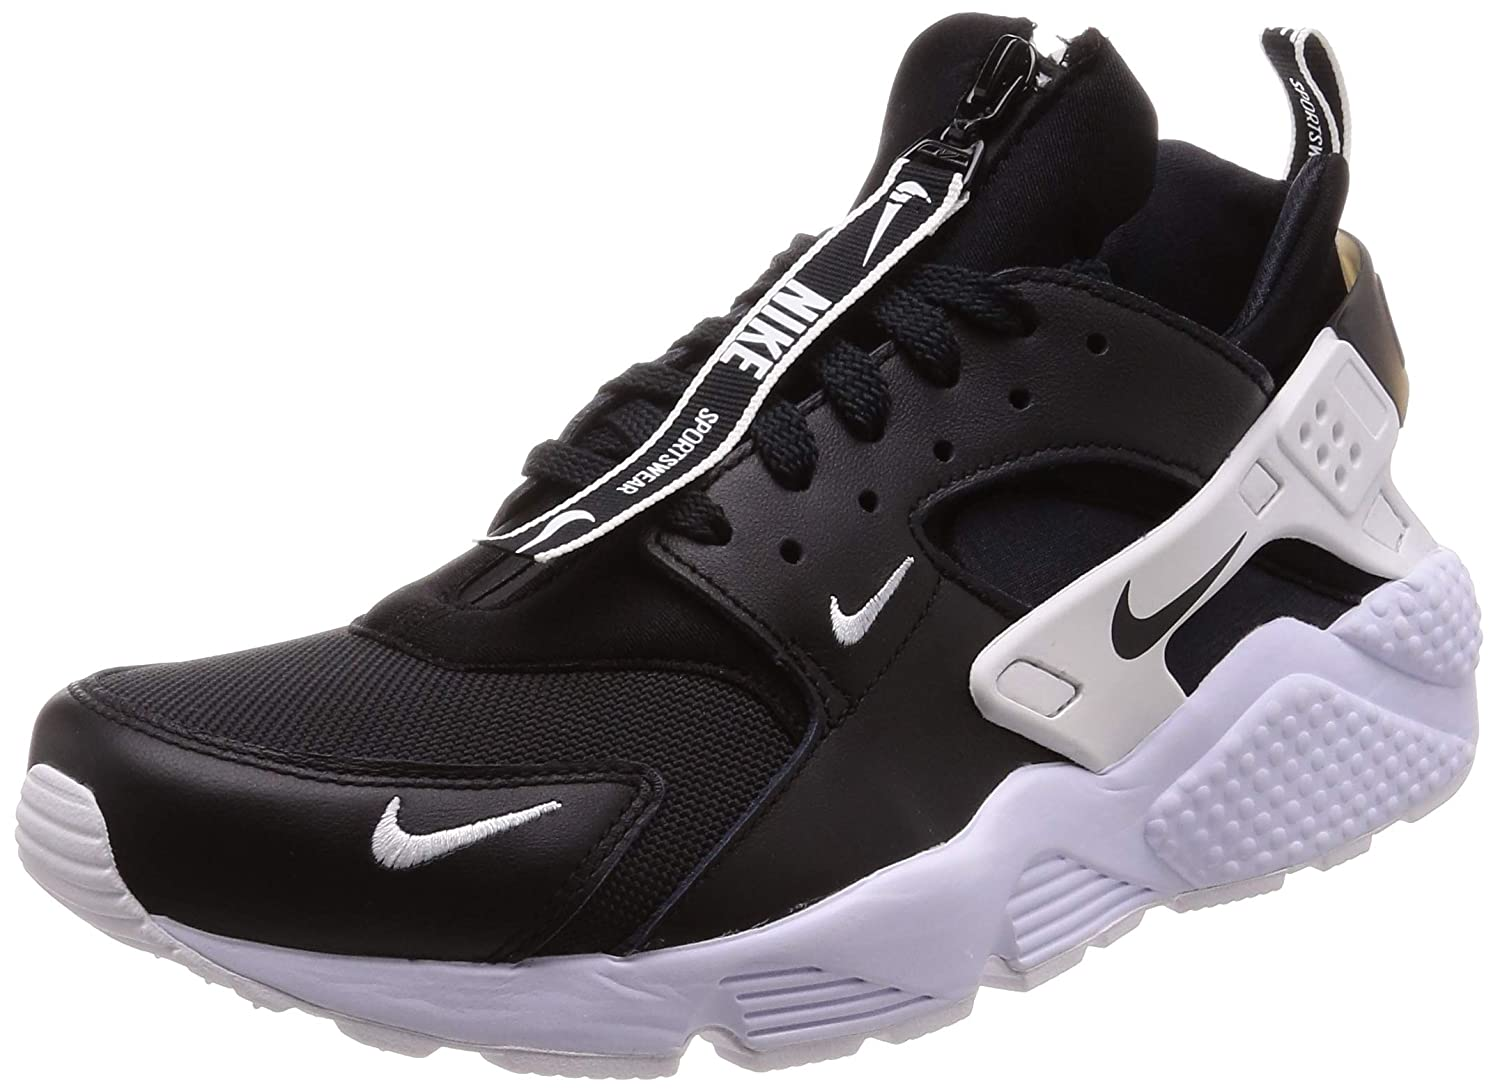 brand new 08fdd eb92f Nike Men s s Air Huarache Run PRM Zip Multisport Indoor Shoes   Amazon.co.uk  Shoes   Bags